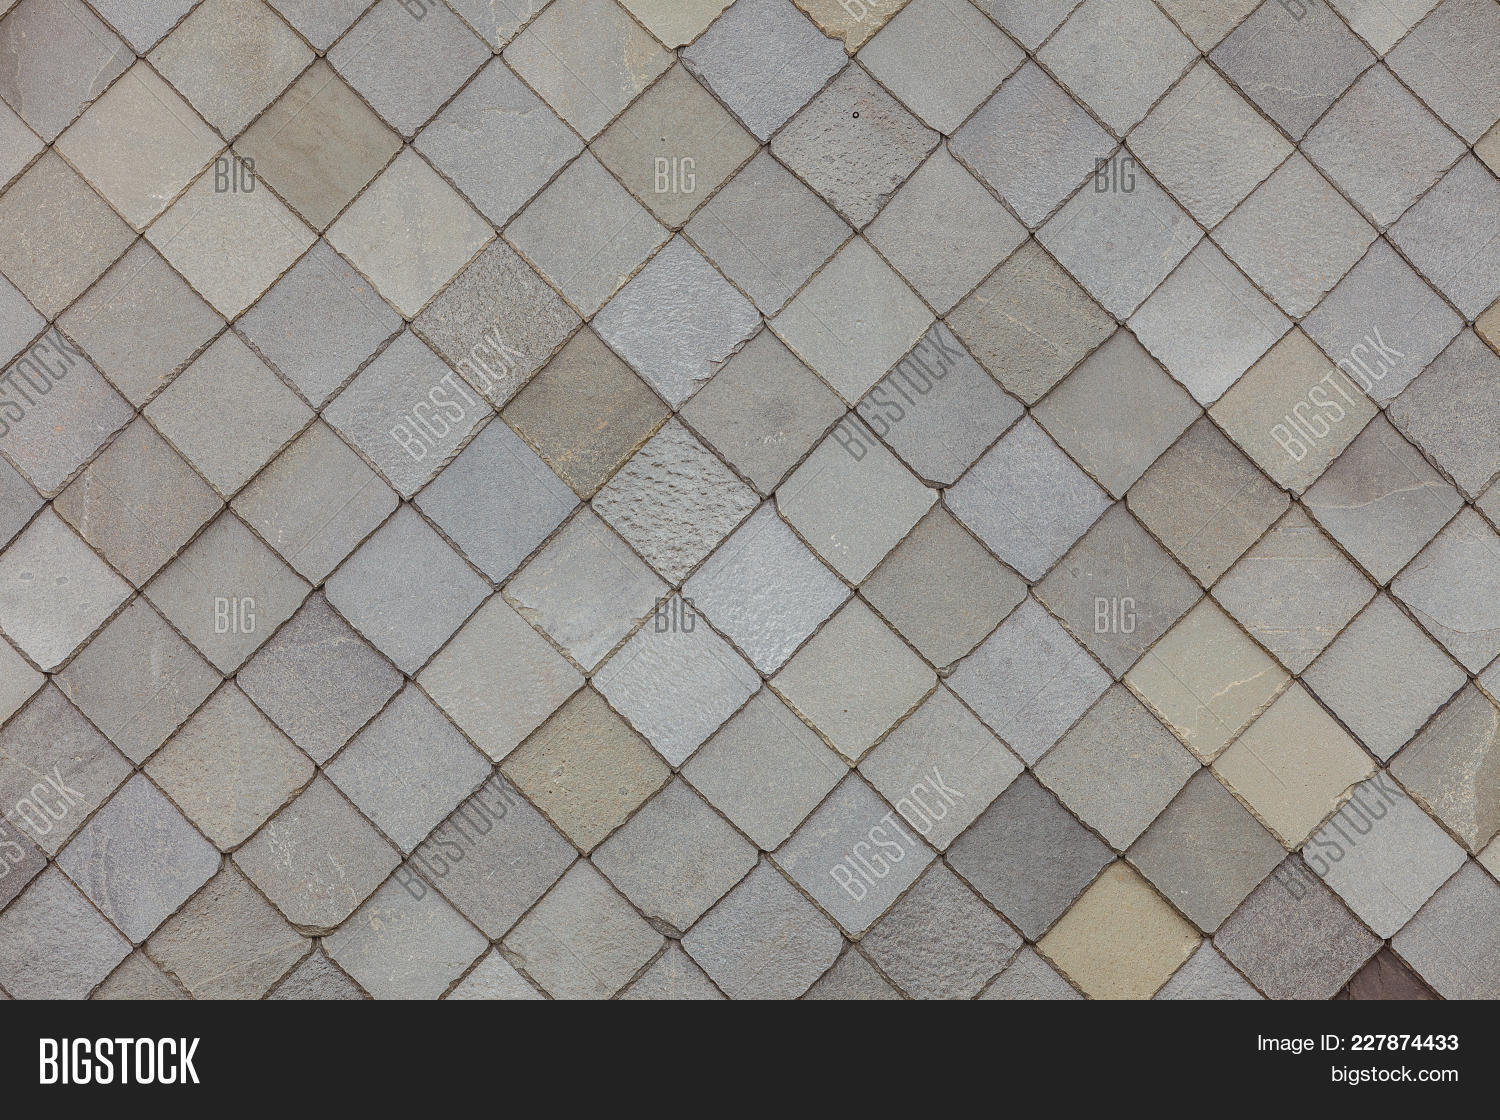 Brown Stone Tiles Roof Image Photo Free Trial Bigstock